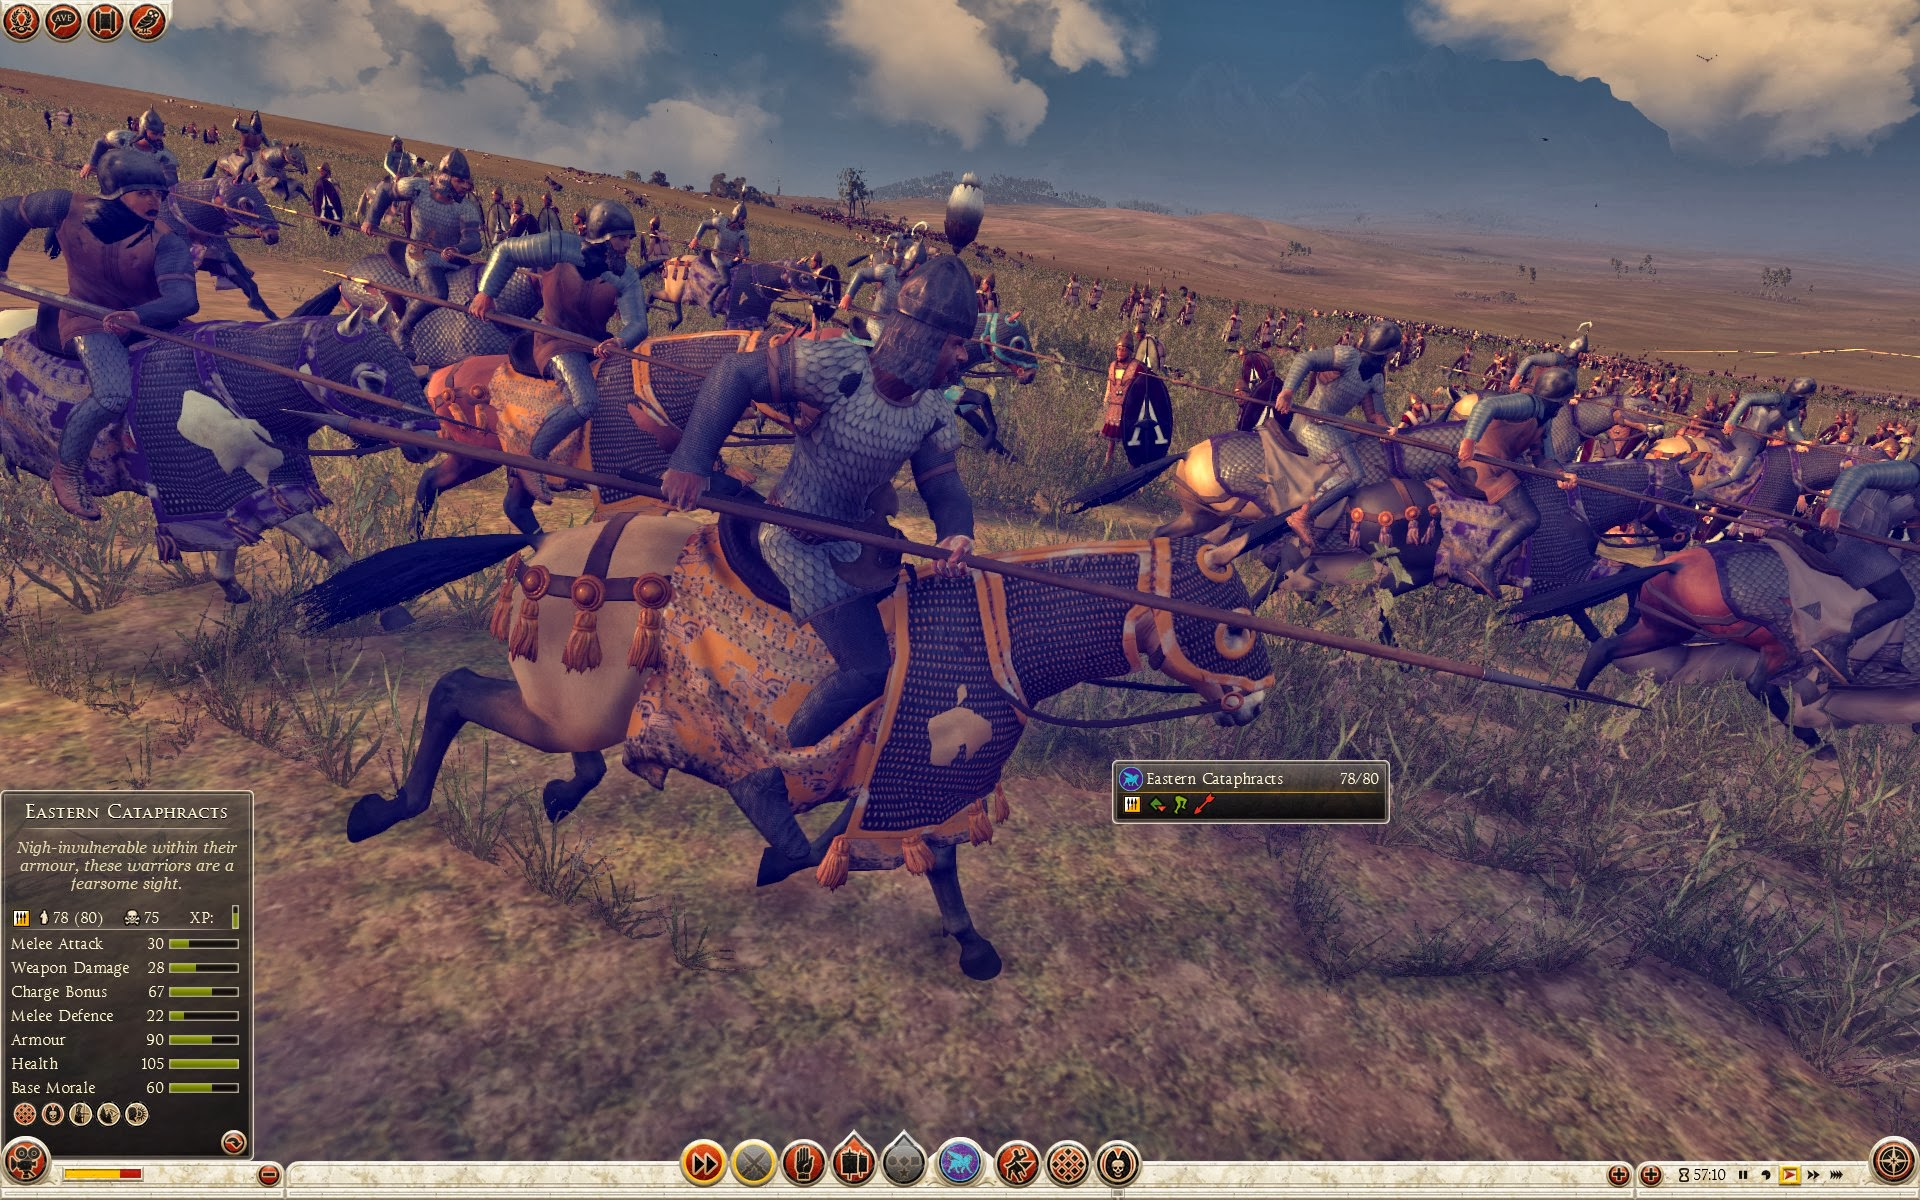 Eastern Cataphracts